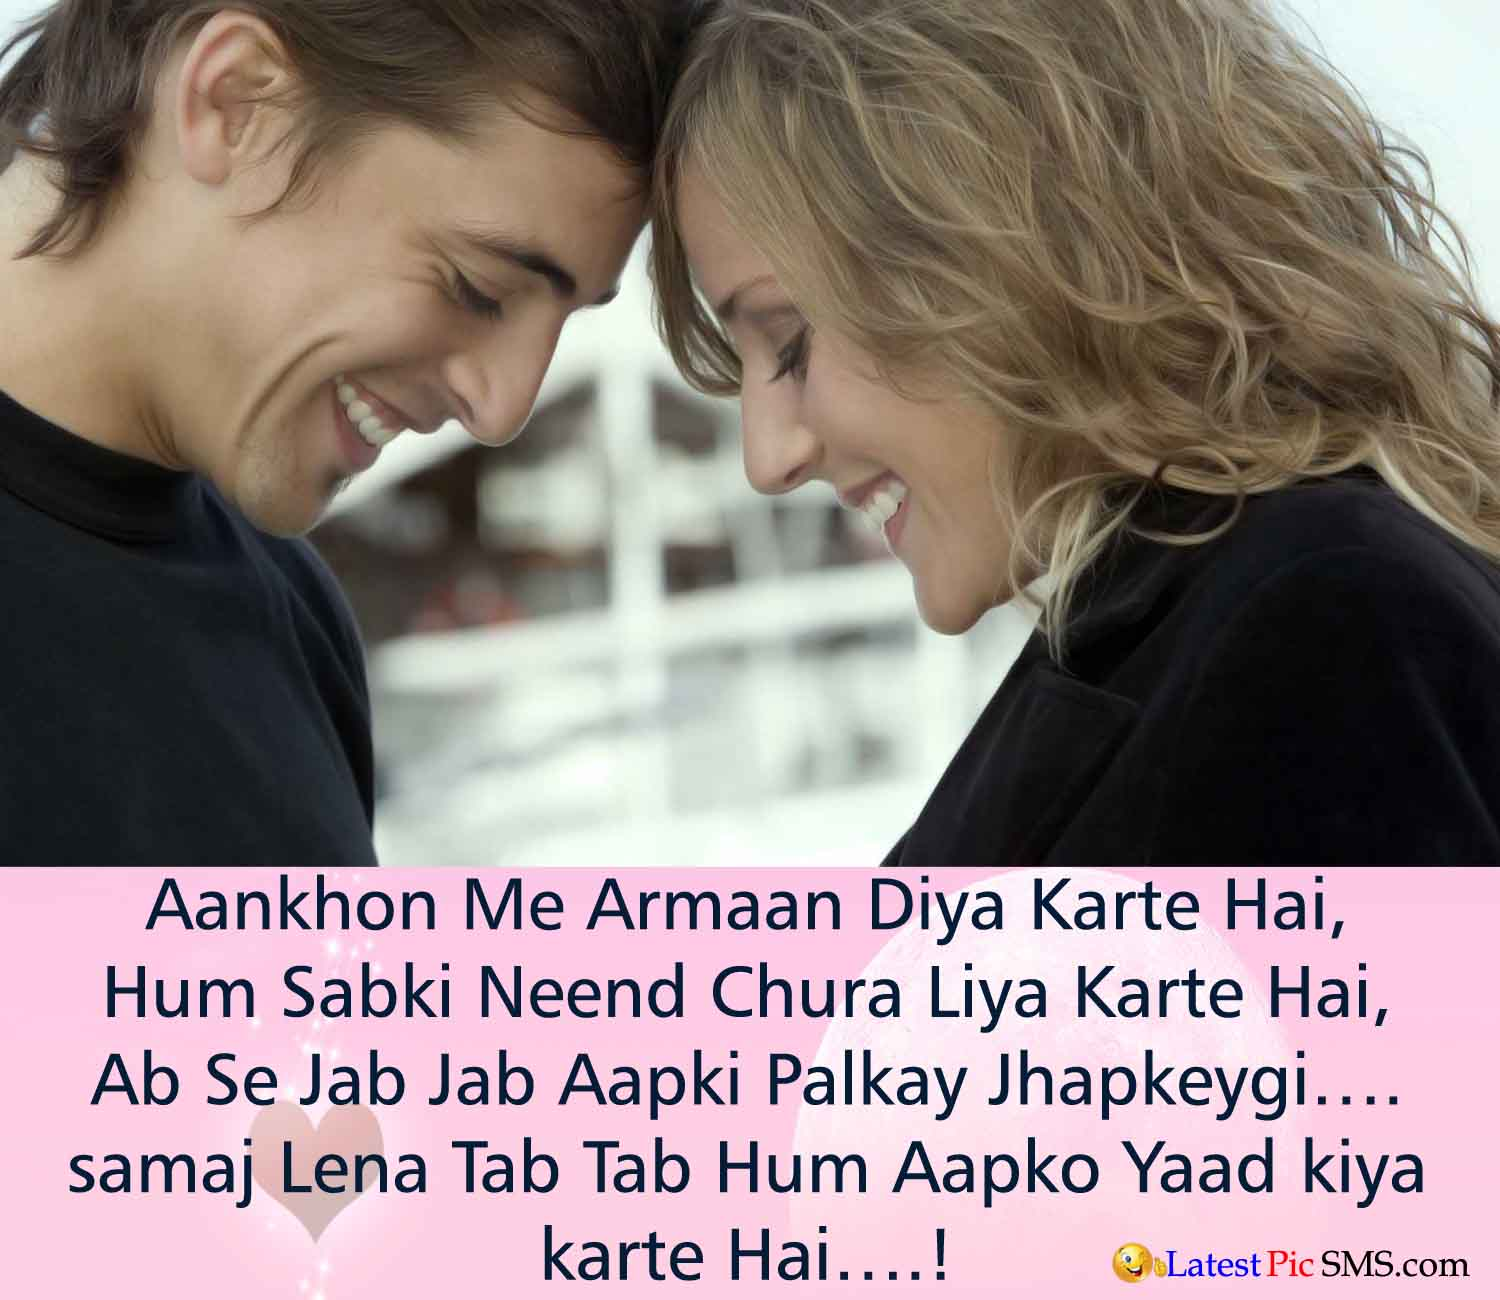 romaontic lovers shayari